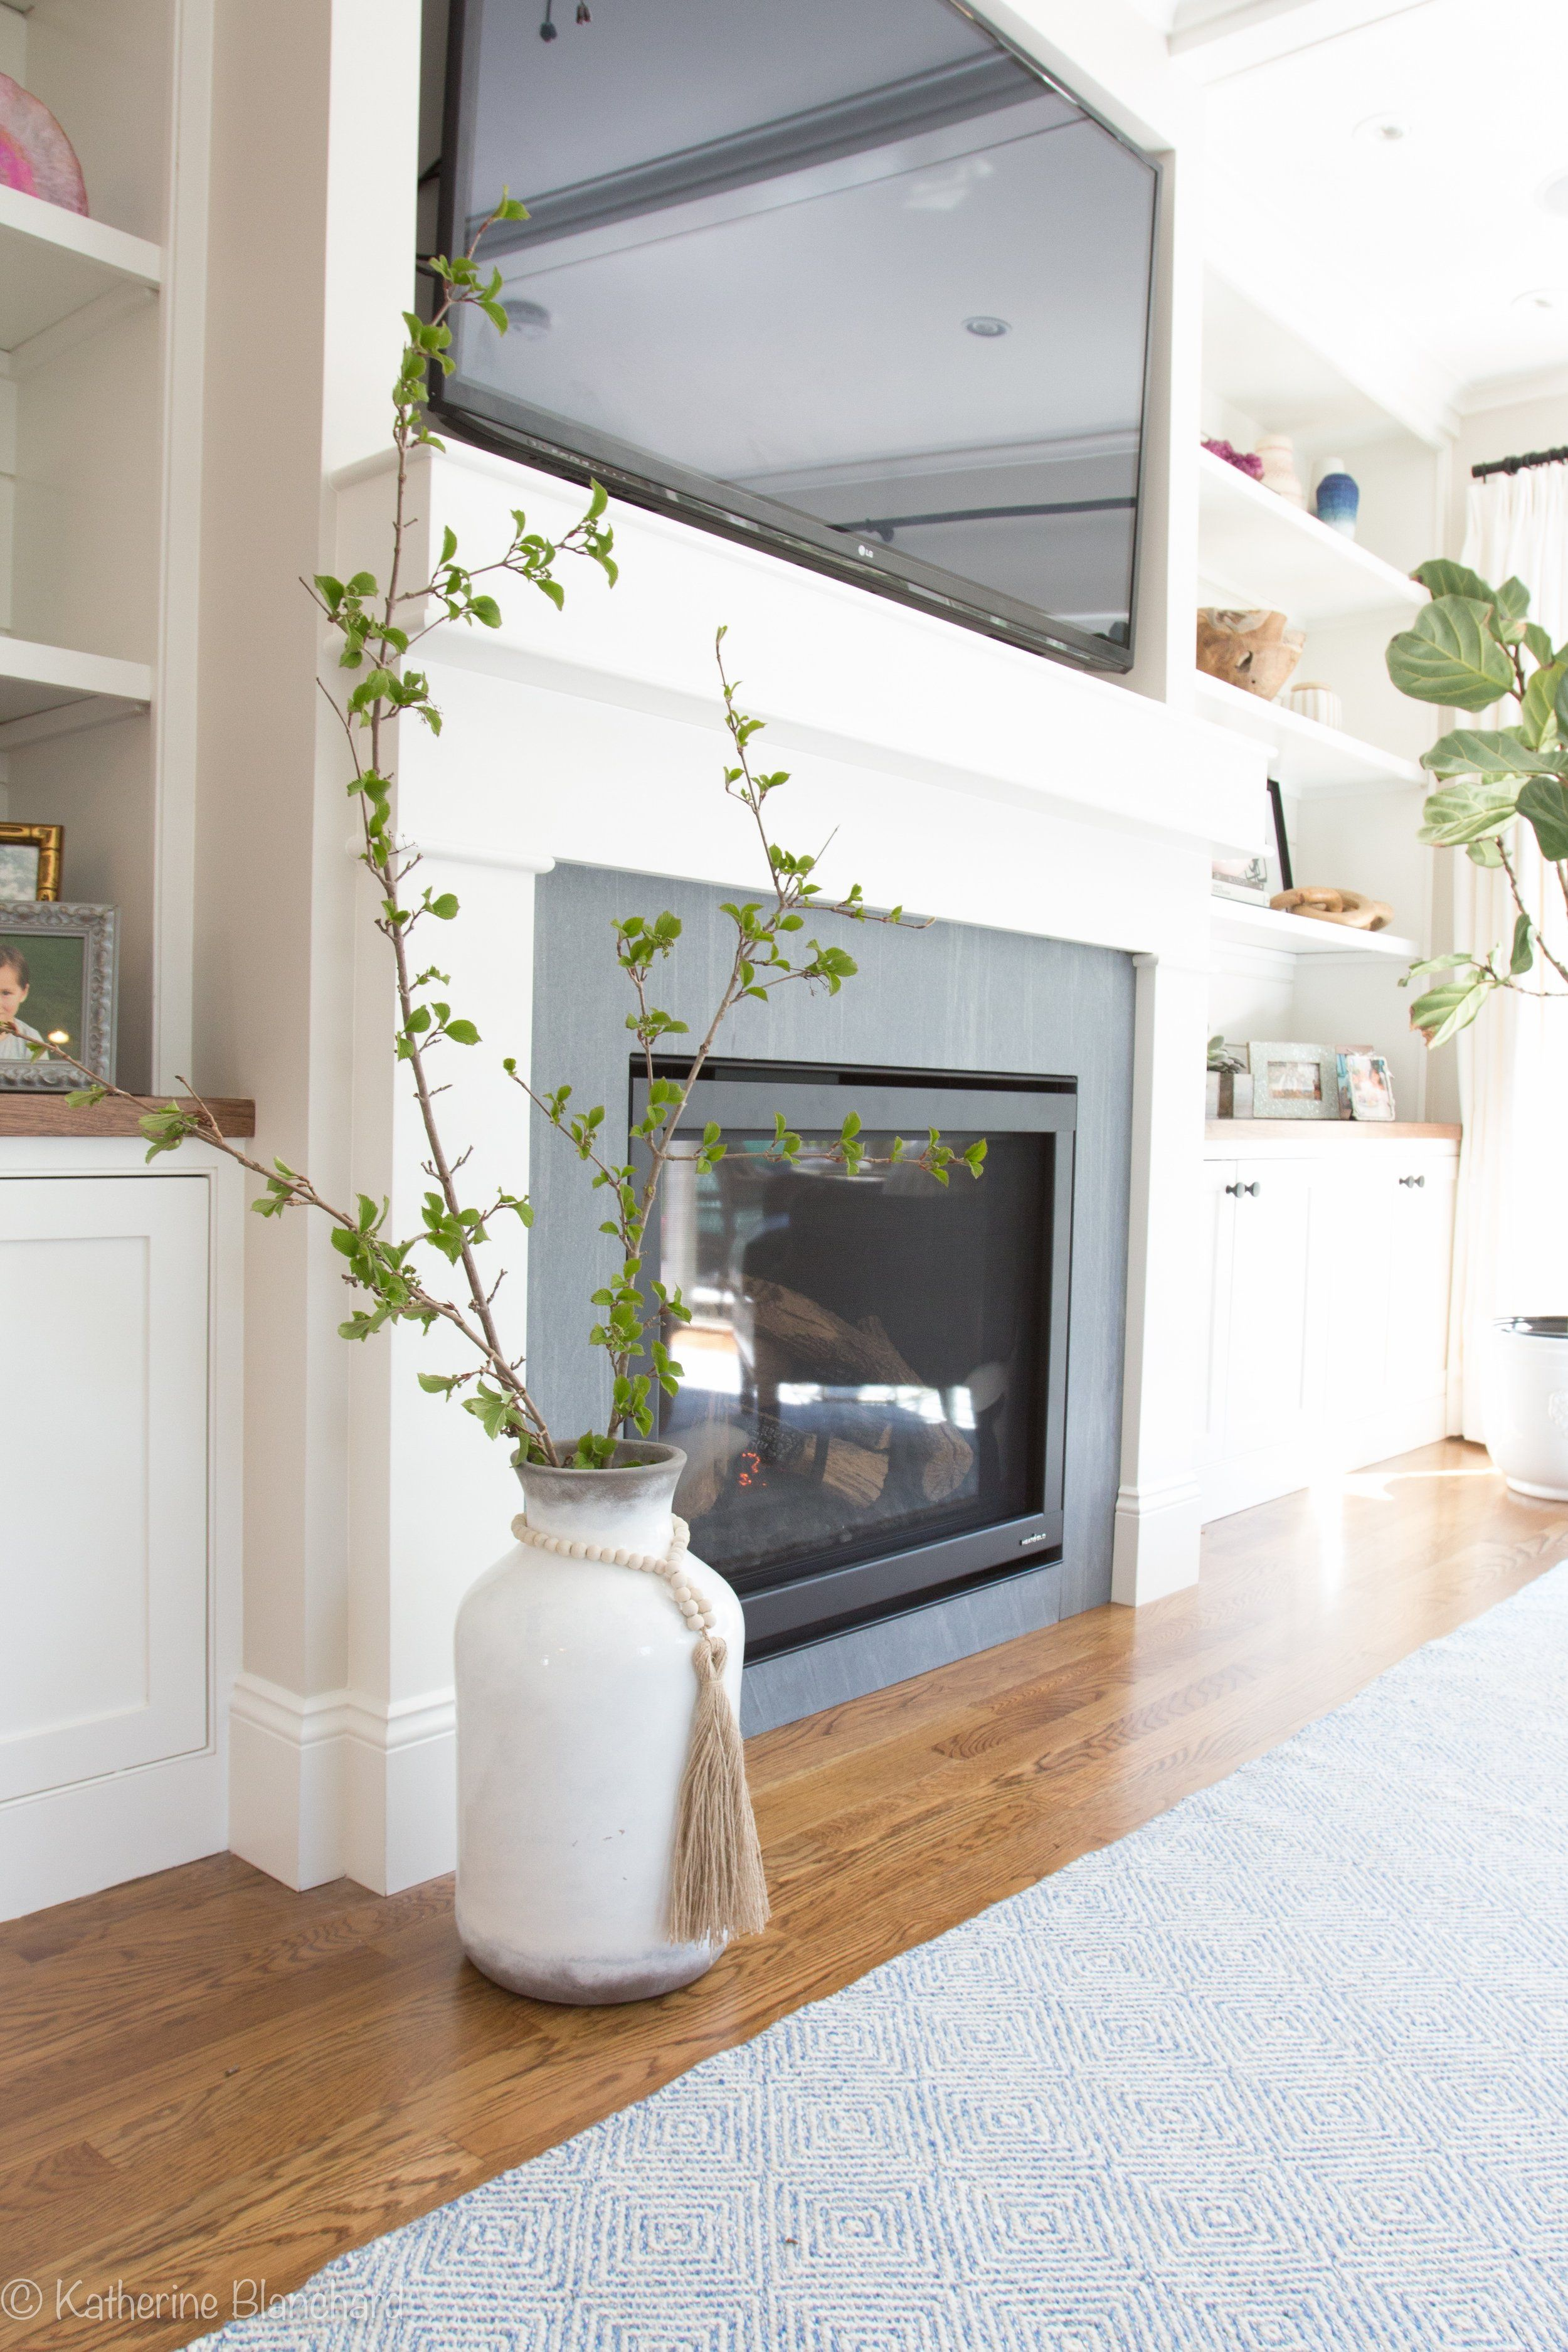 Richard and lisaus builtin bookcases and fireplace decor